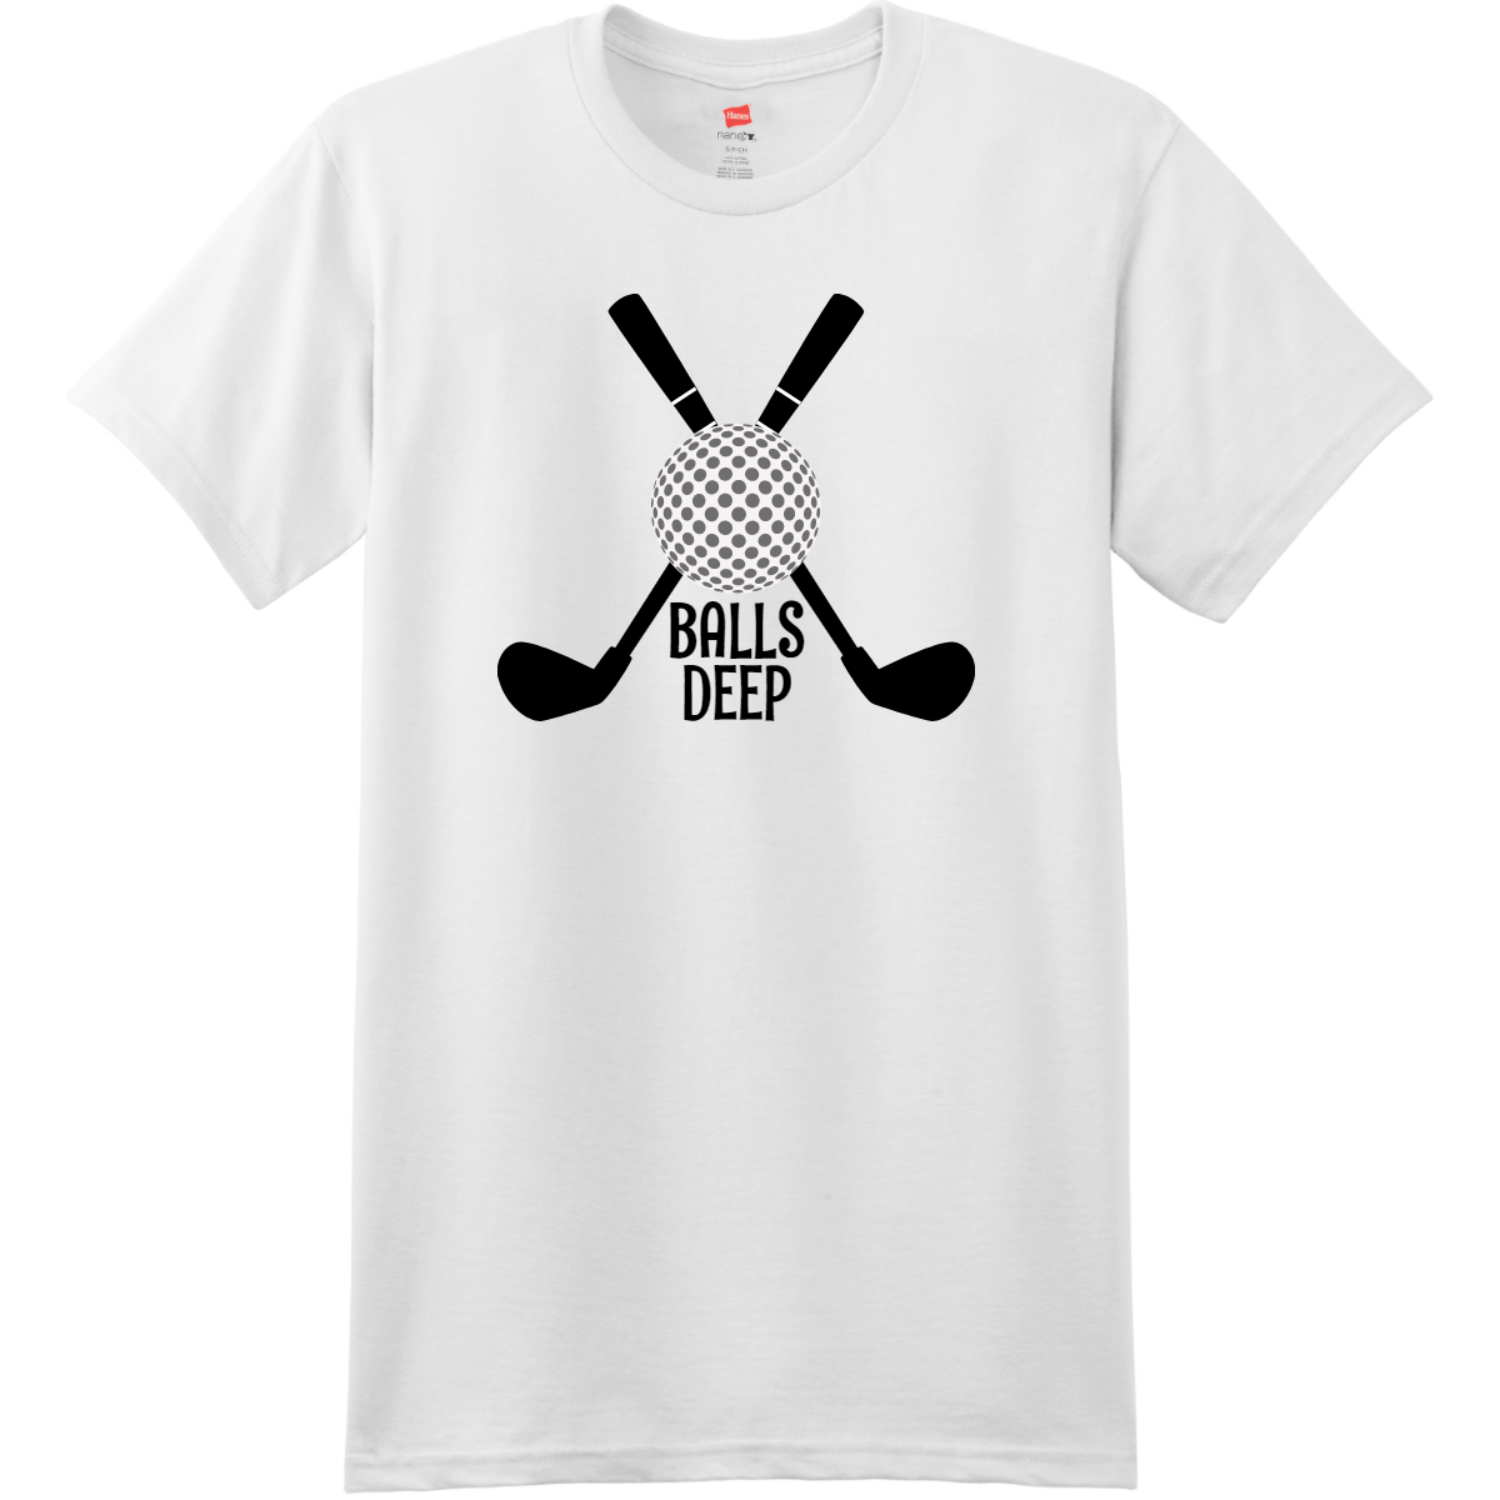 Balls Deep Funny Golf T Shirt White Hanes Nano 4980 Ringspun Cotton T Shirt